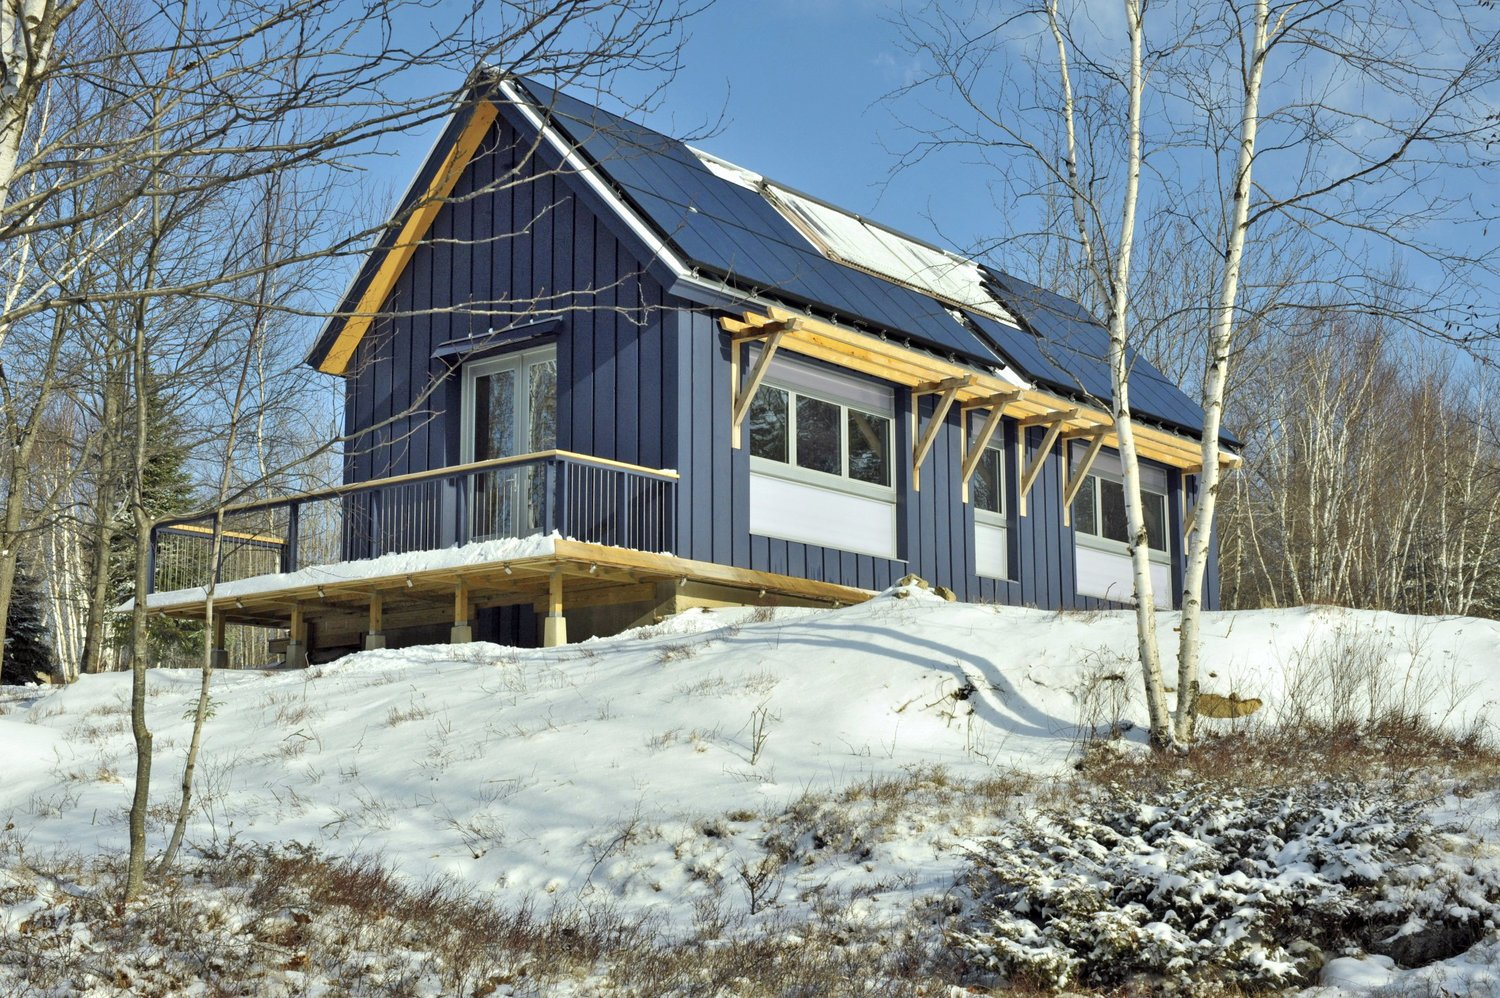 Exterior, Cabin Building Type, Prefab Building Type, Gable RoofLine, and Wood Siding Material Brightbuilt Homes has been constructing beautiful modular homes in Maine since 2005. Modular home prices in Maine reflect the somewhat more expensive Northeast market: this tiny but tasteful, fully customized, net-zero energy barn runs about $280 per square foot.